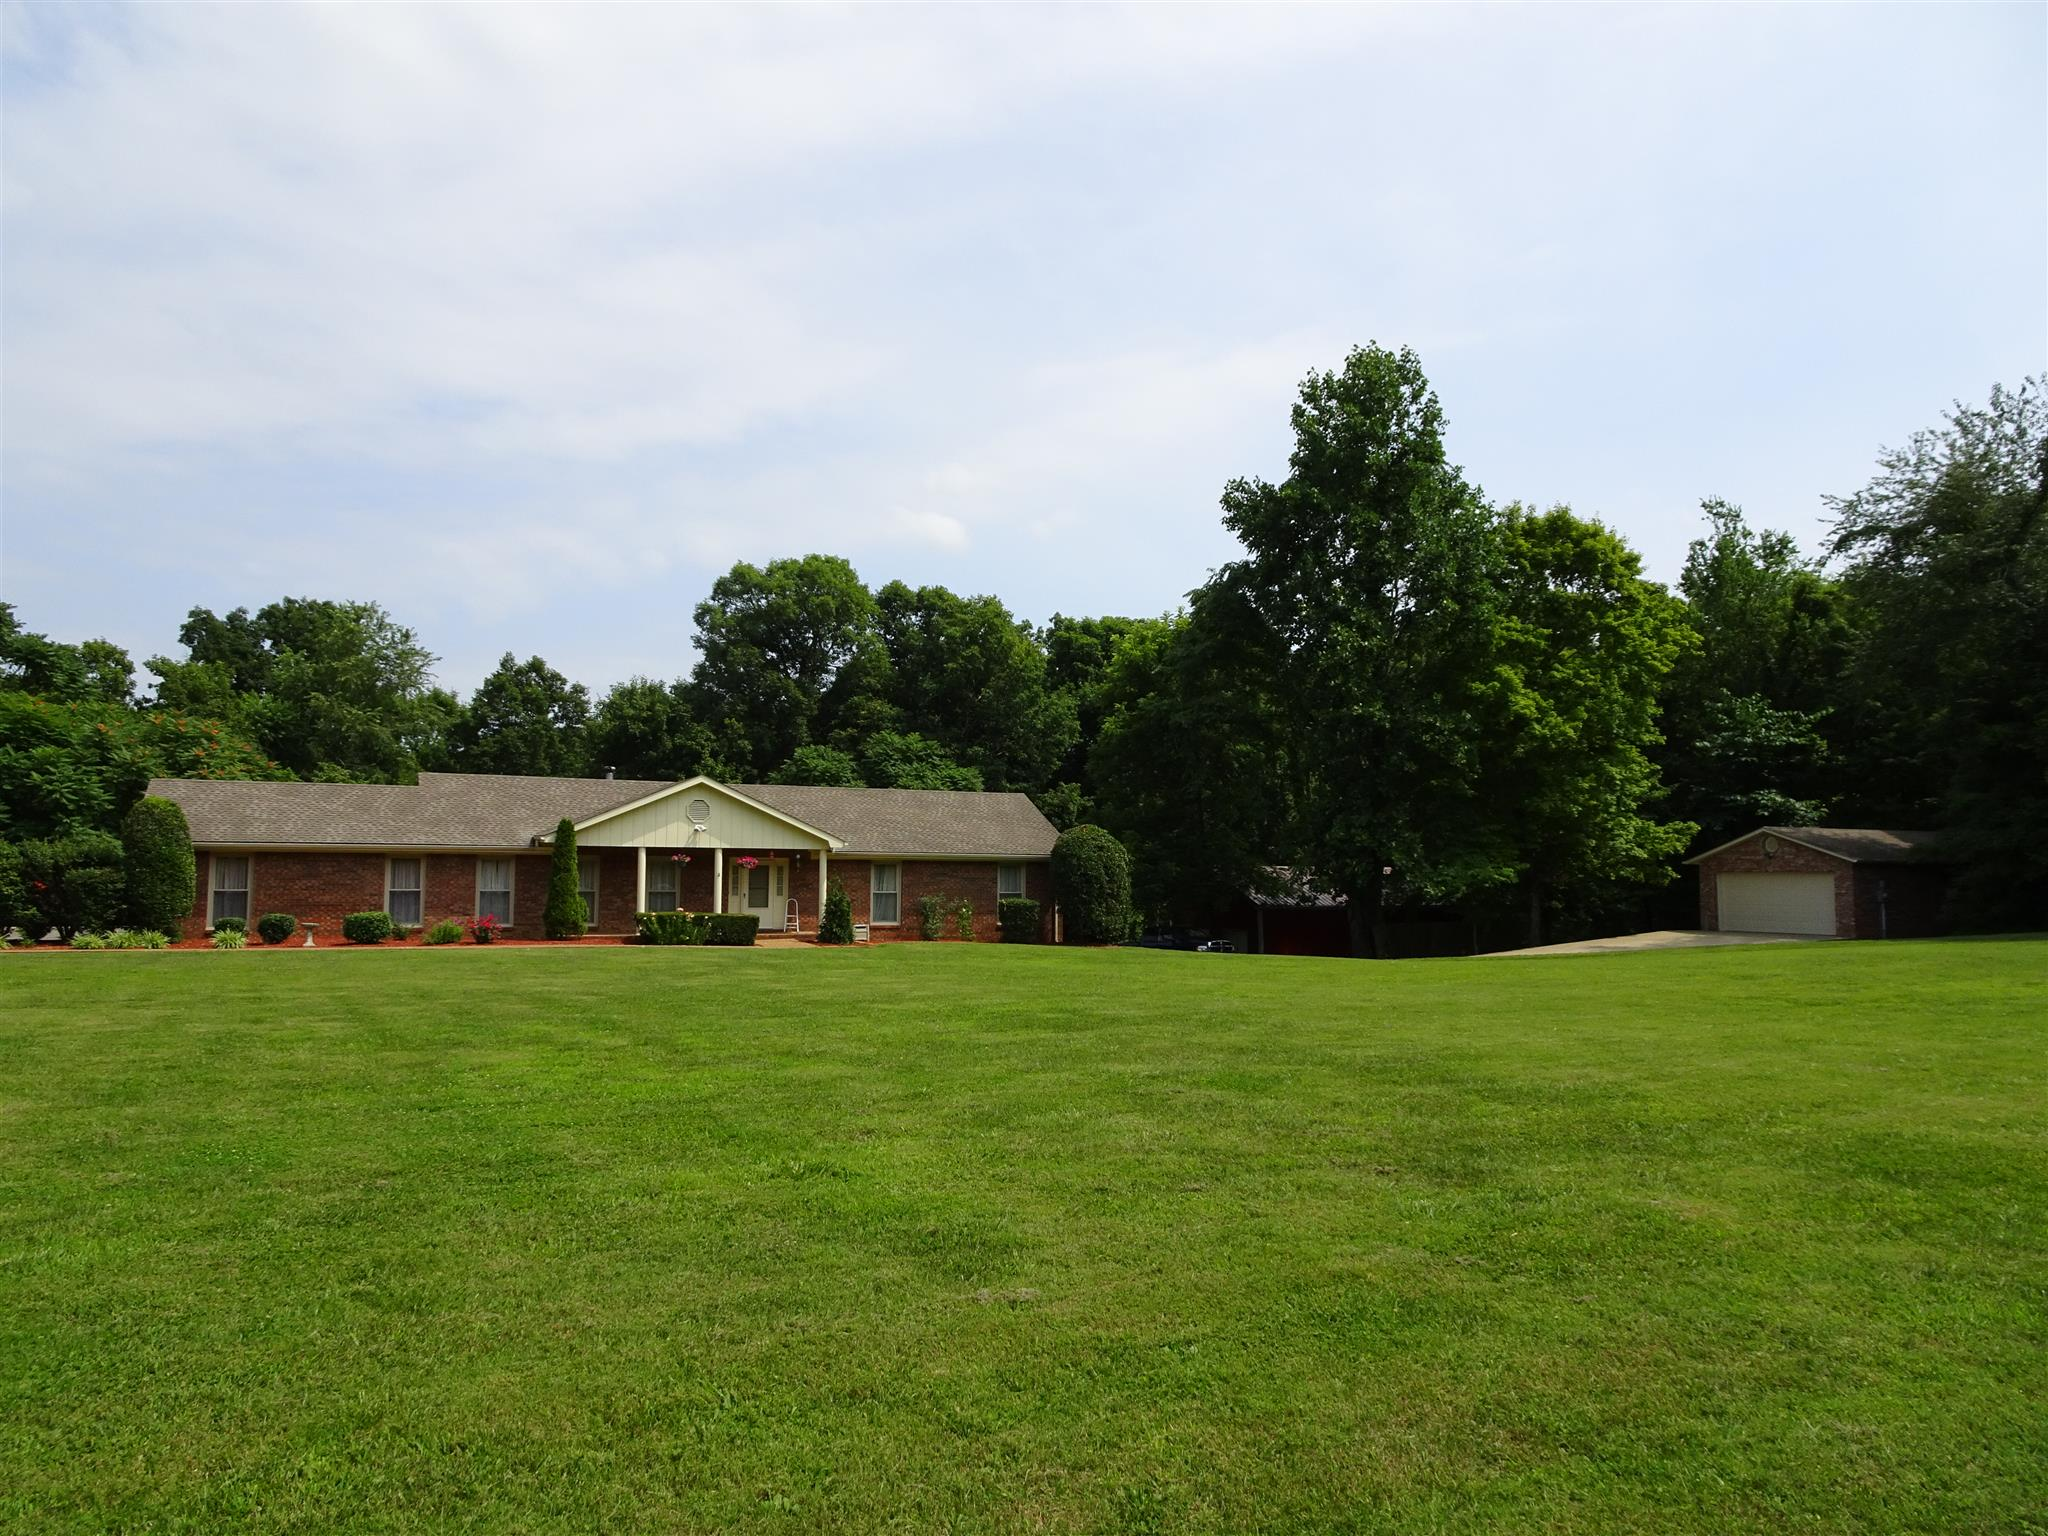 3633 OAK RIDGE ROAD, Palmyra, TN 37142 - Palmyra, TN real estate listing